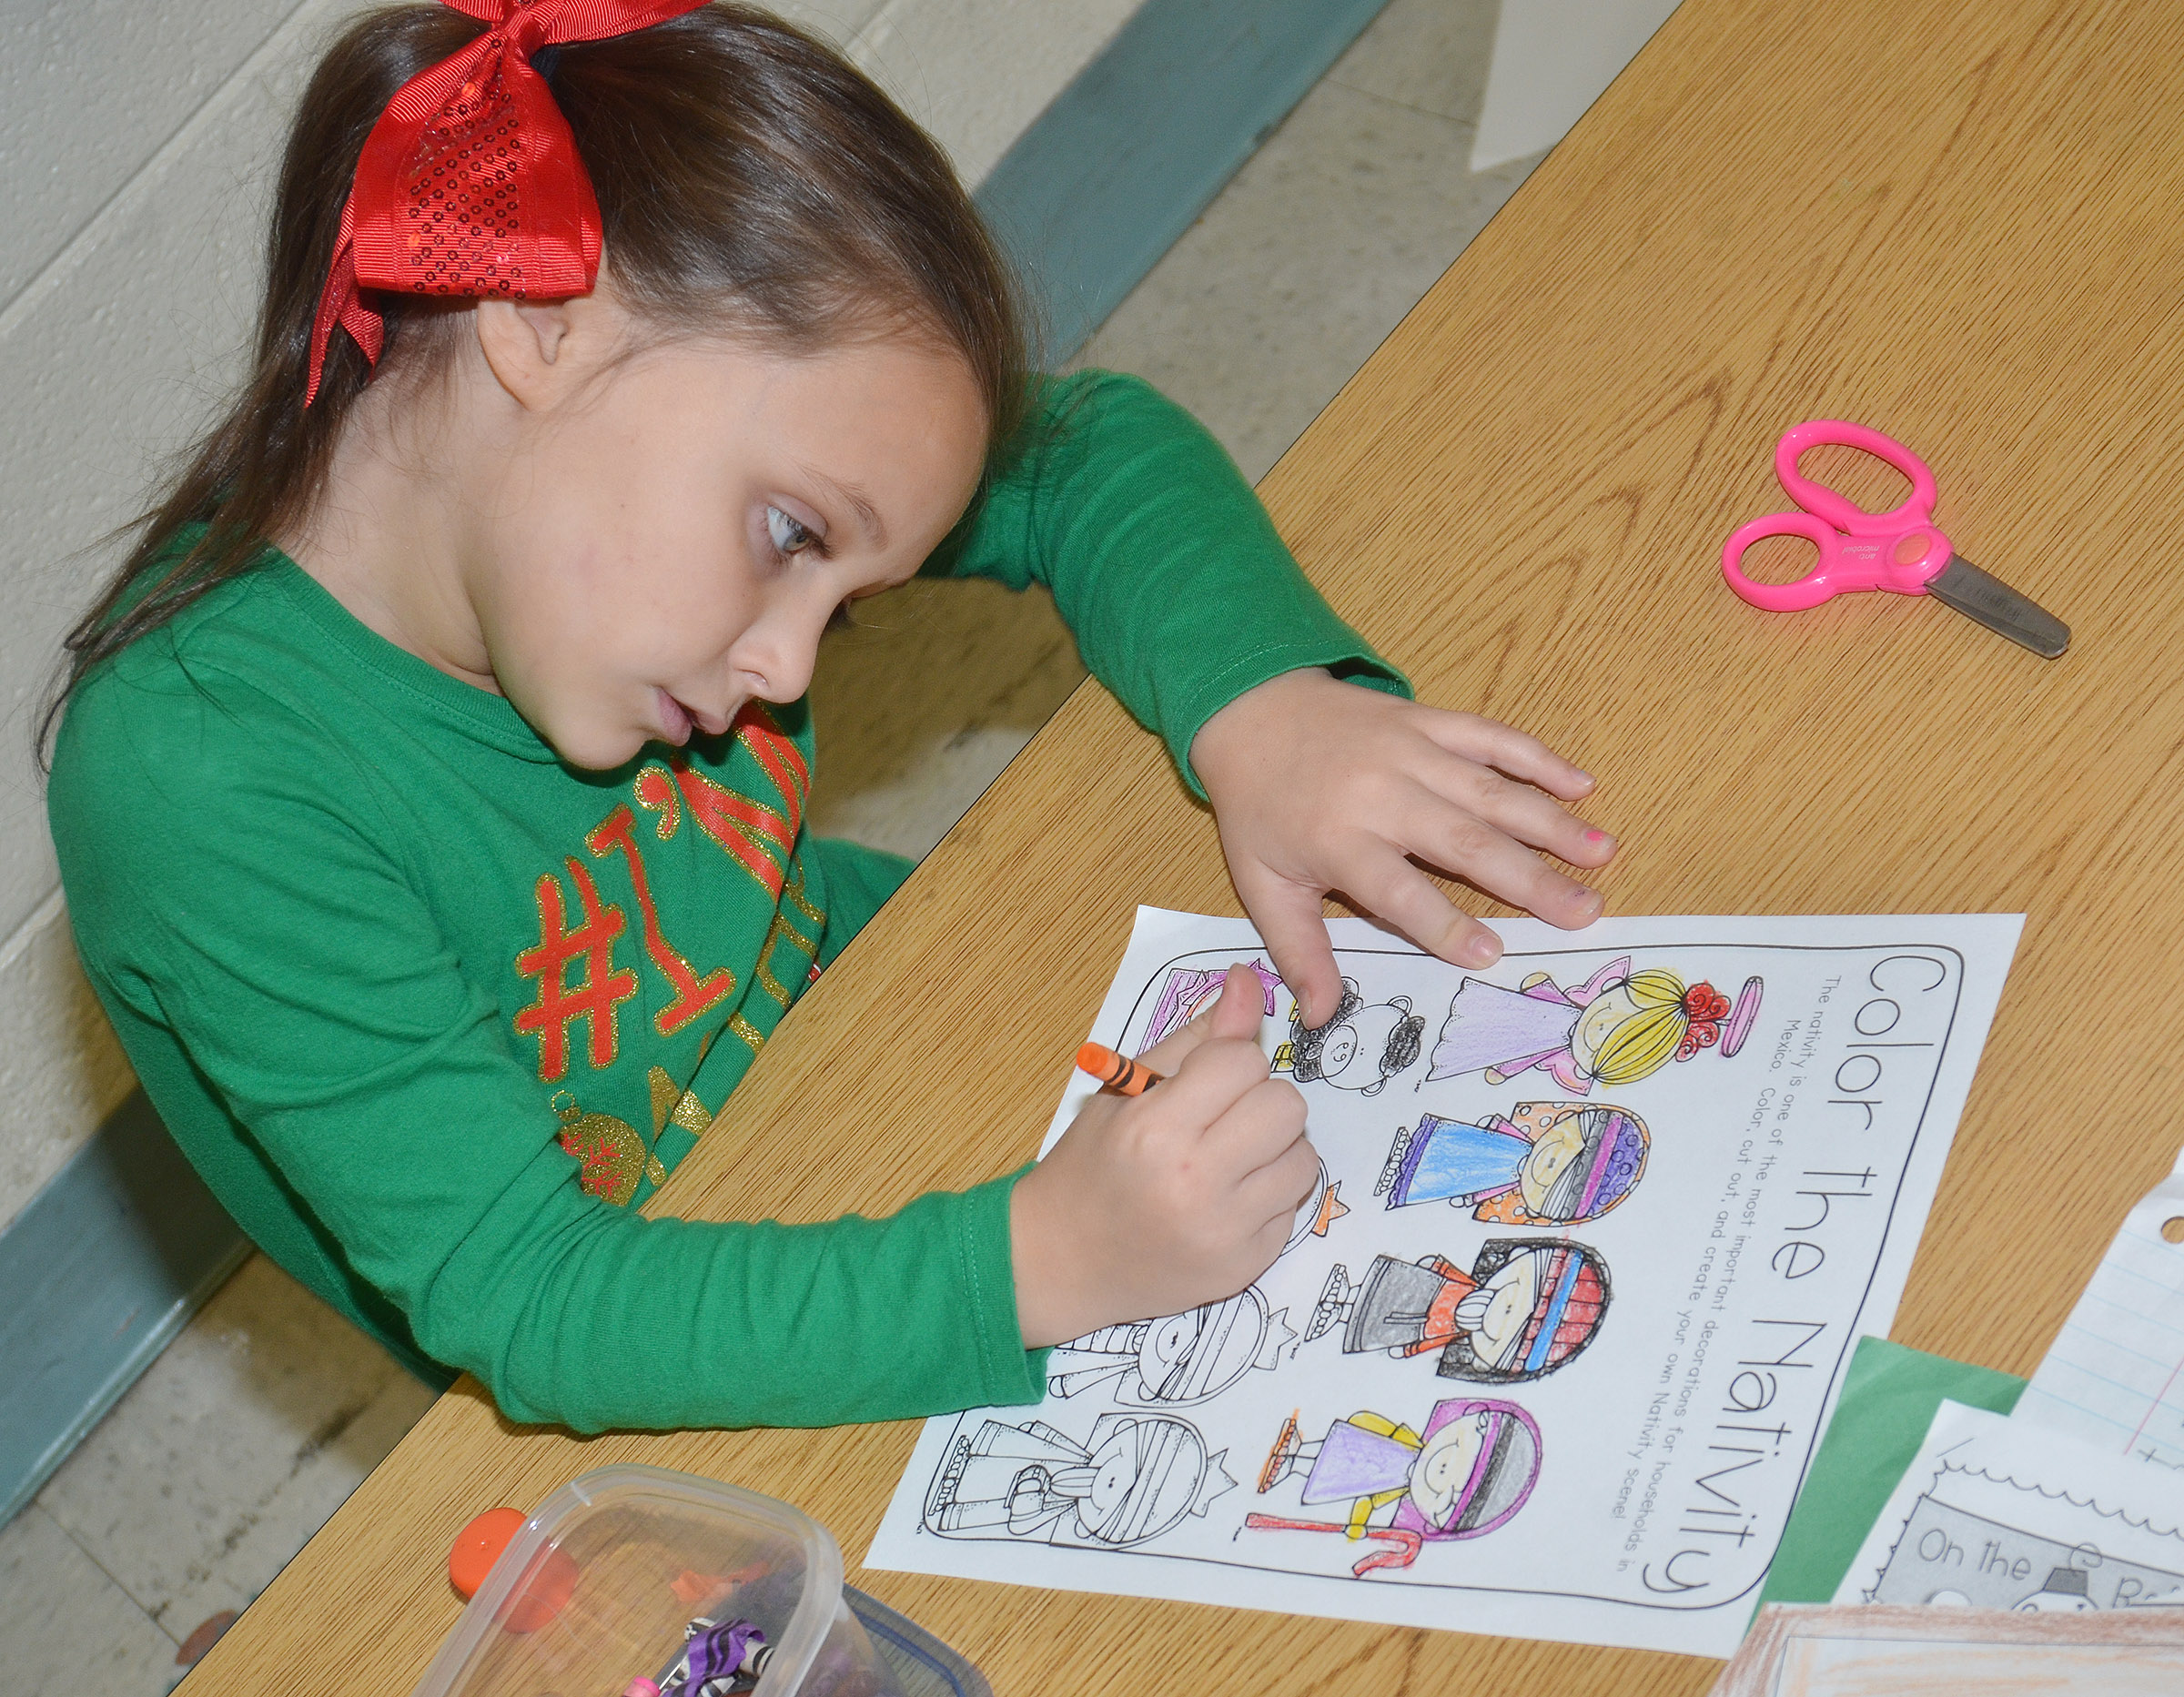 CES second-grader Serenity Taylor colors a nativity scene.